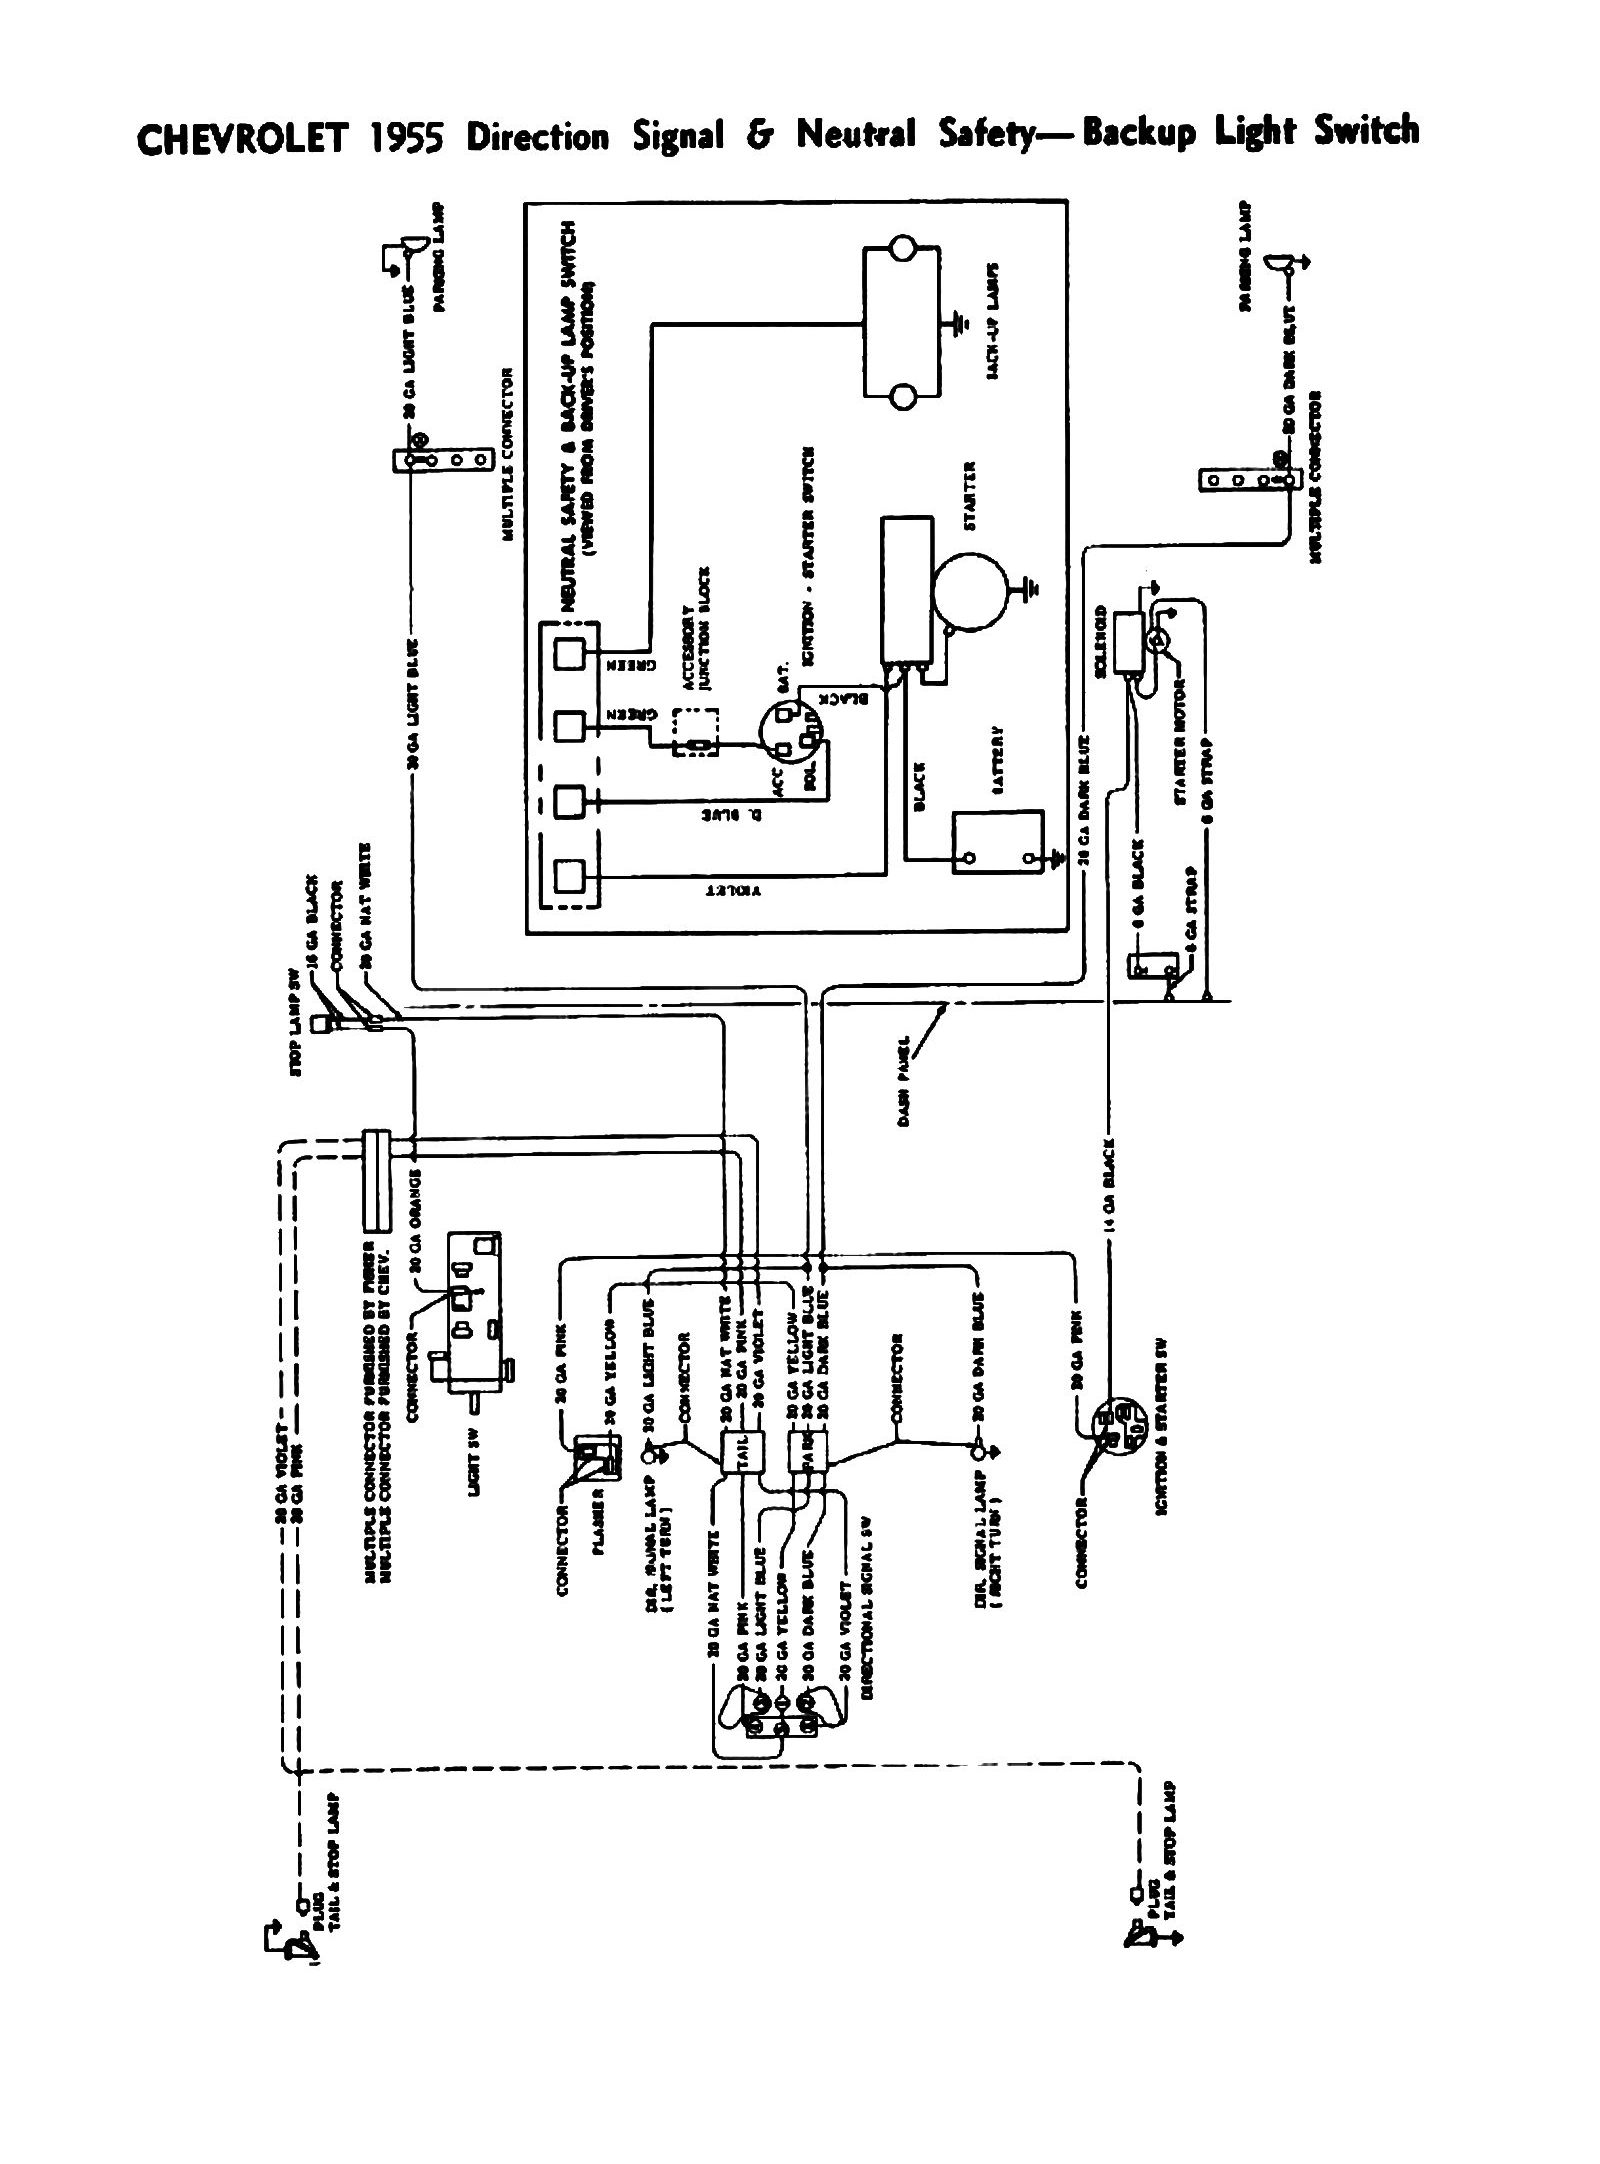 Wiring on 1963 Ford Fairlane Wiring Diagram